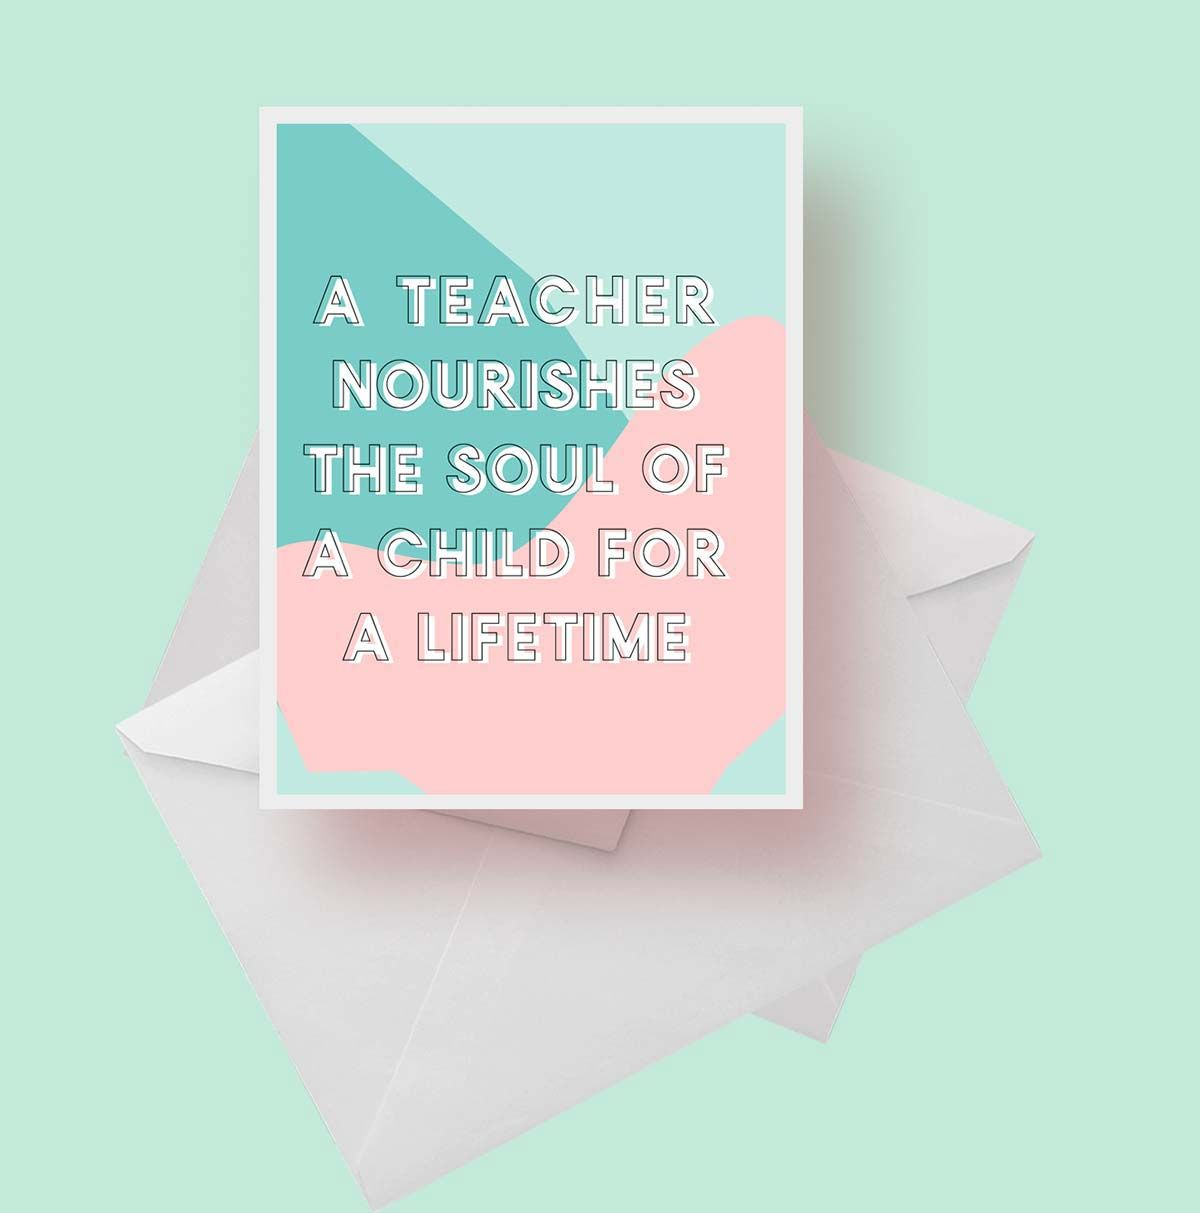 A teacher nourishes the soul of a child for a lifetime daily a teacher nourishes the soul of a child for a lifetime daily greeting kristyandbryce Gallery